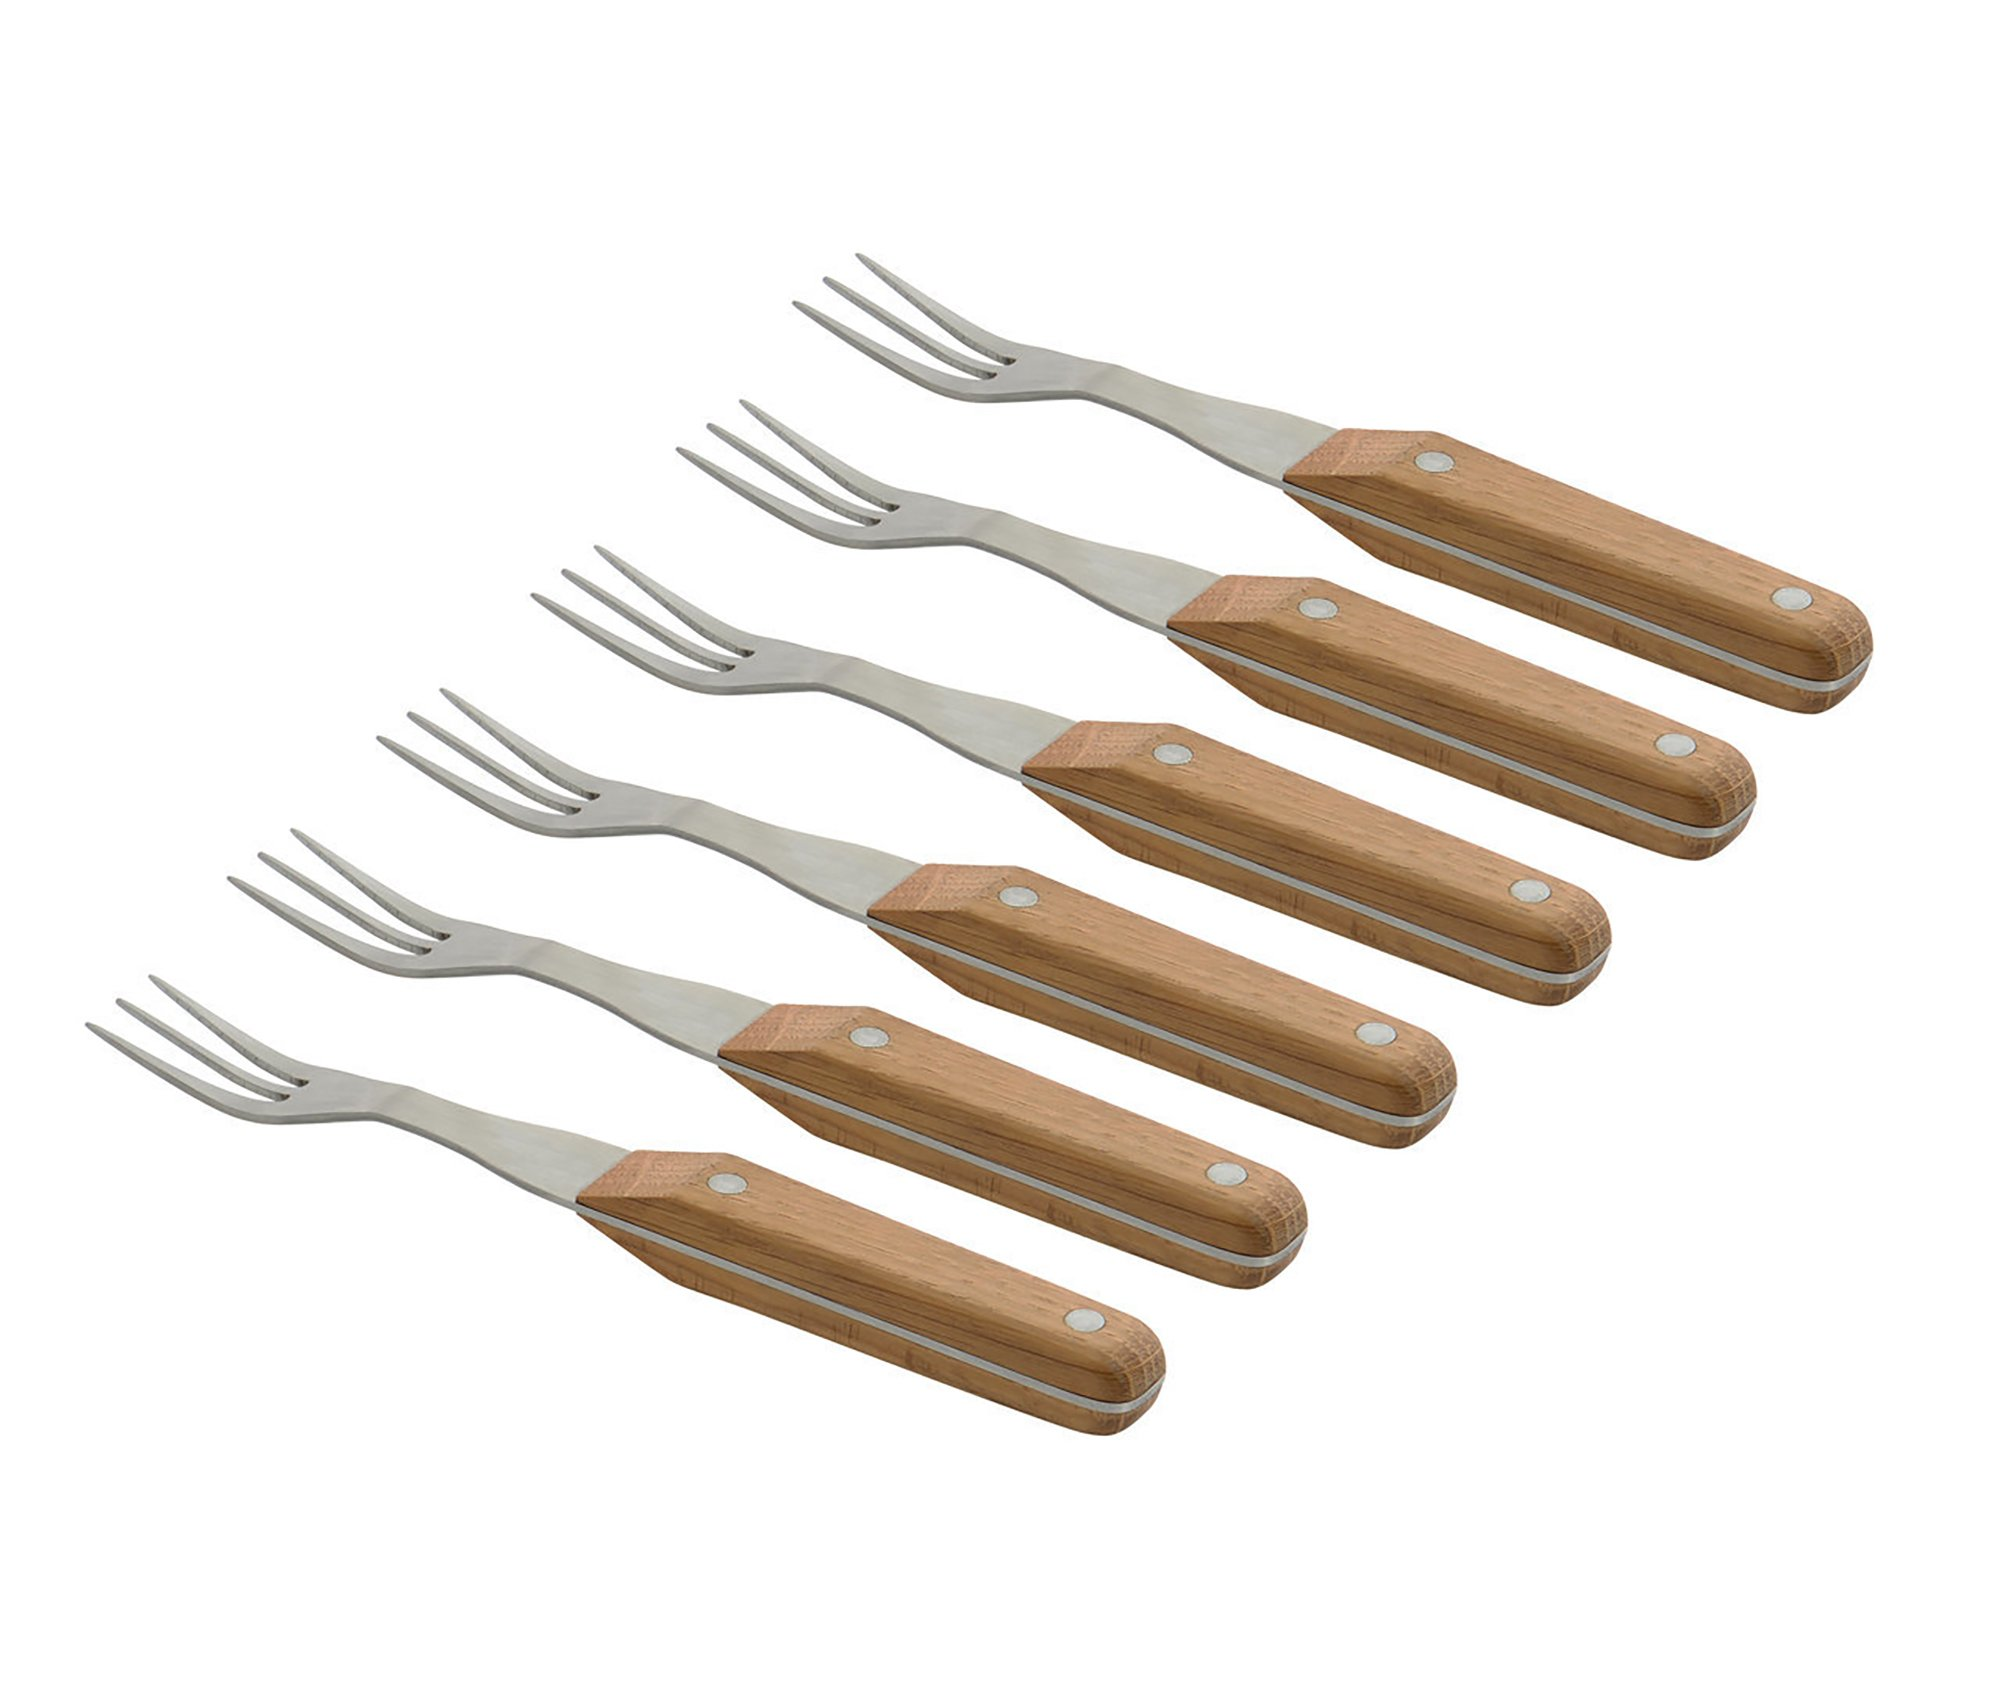 Berghoff Collect & Cook Steak Fork (6X), Stainless Steel Wooden Handle - Perfect Holding Meat, Fish, Pork